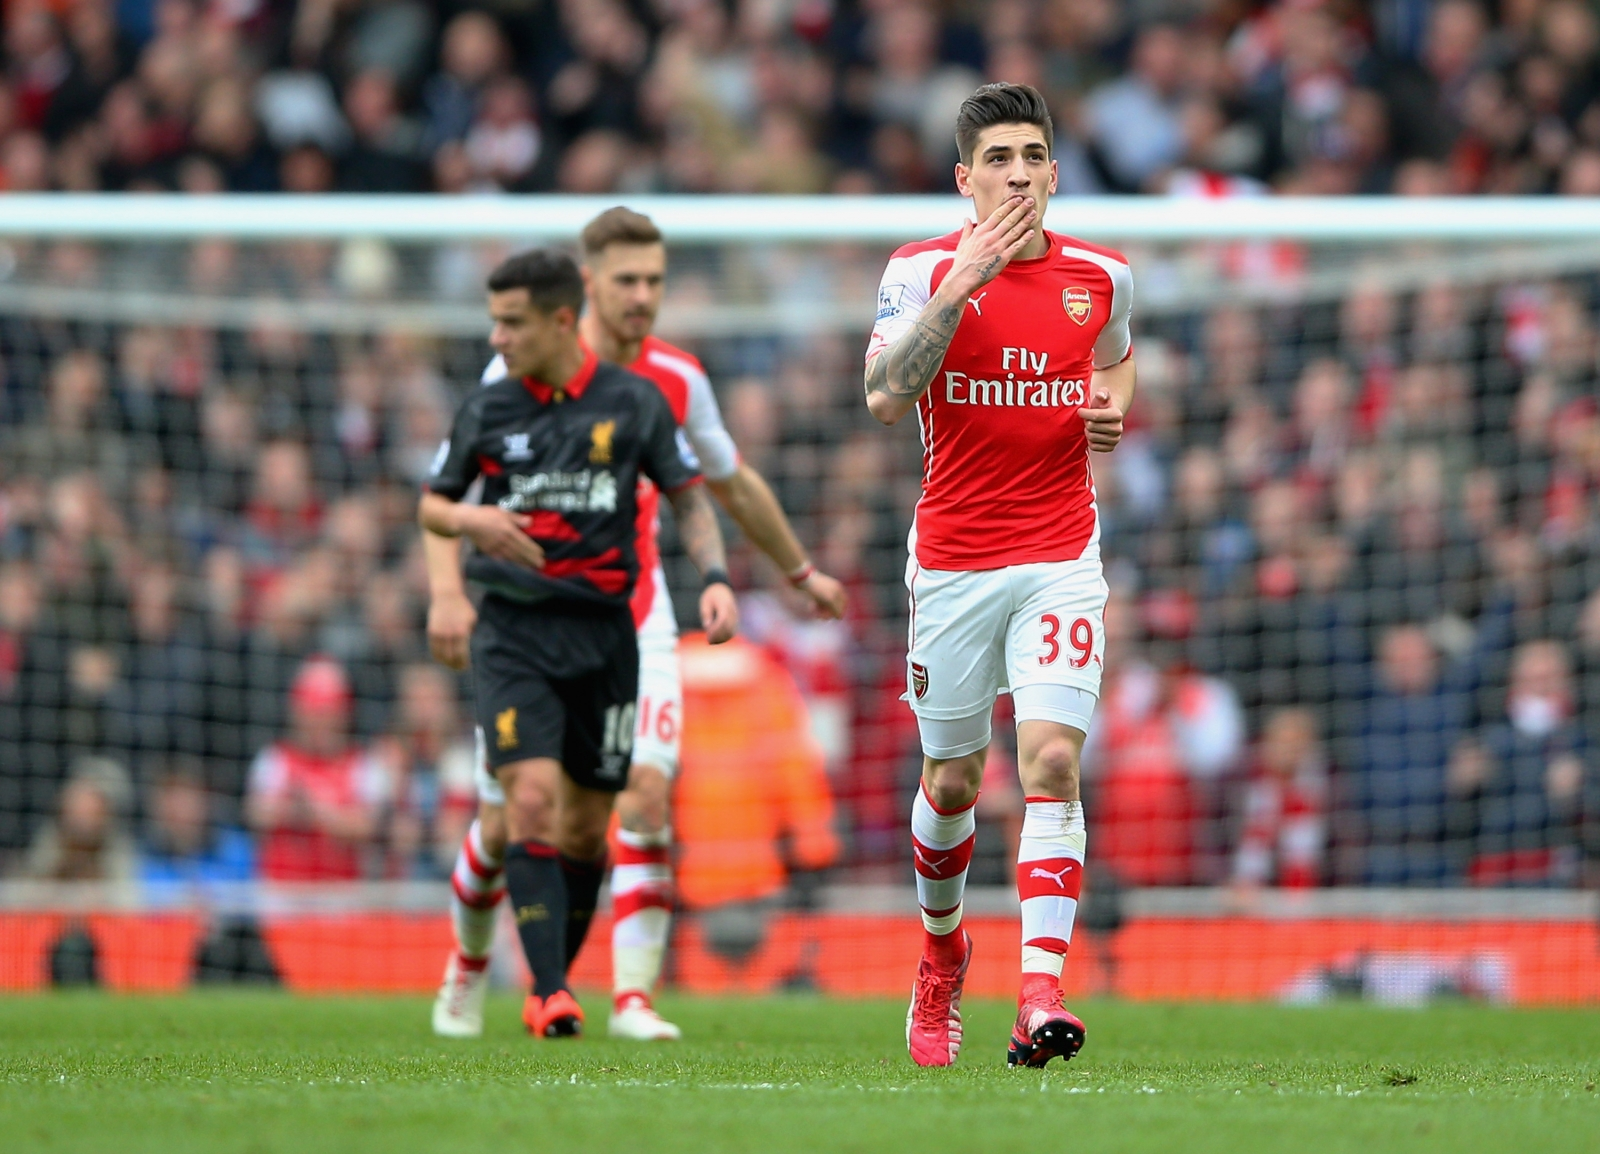 Hector Bellerin is officially the fastest player at Arsenal